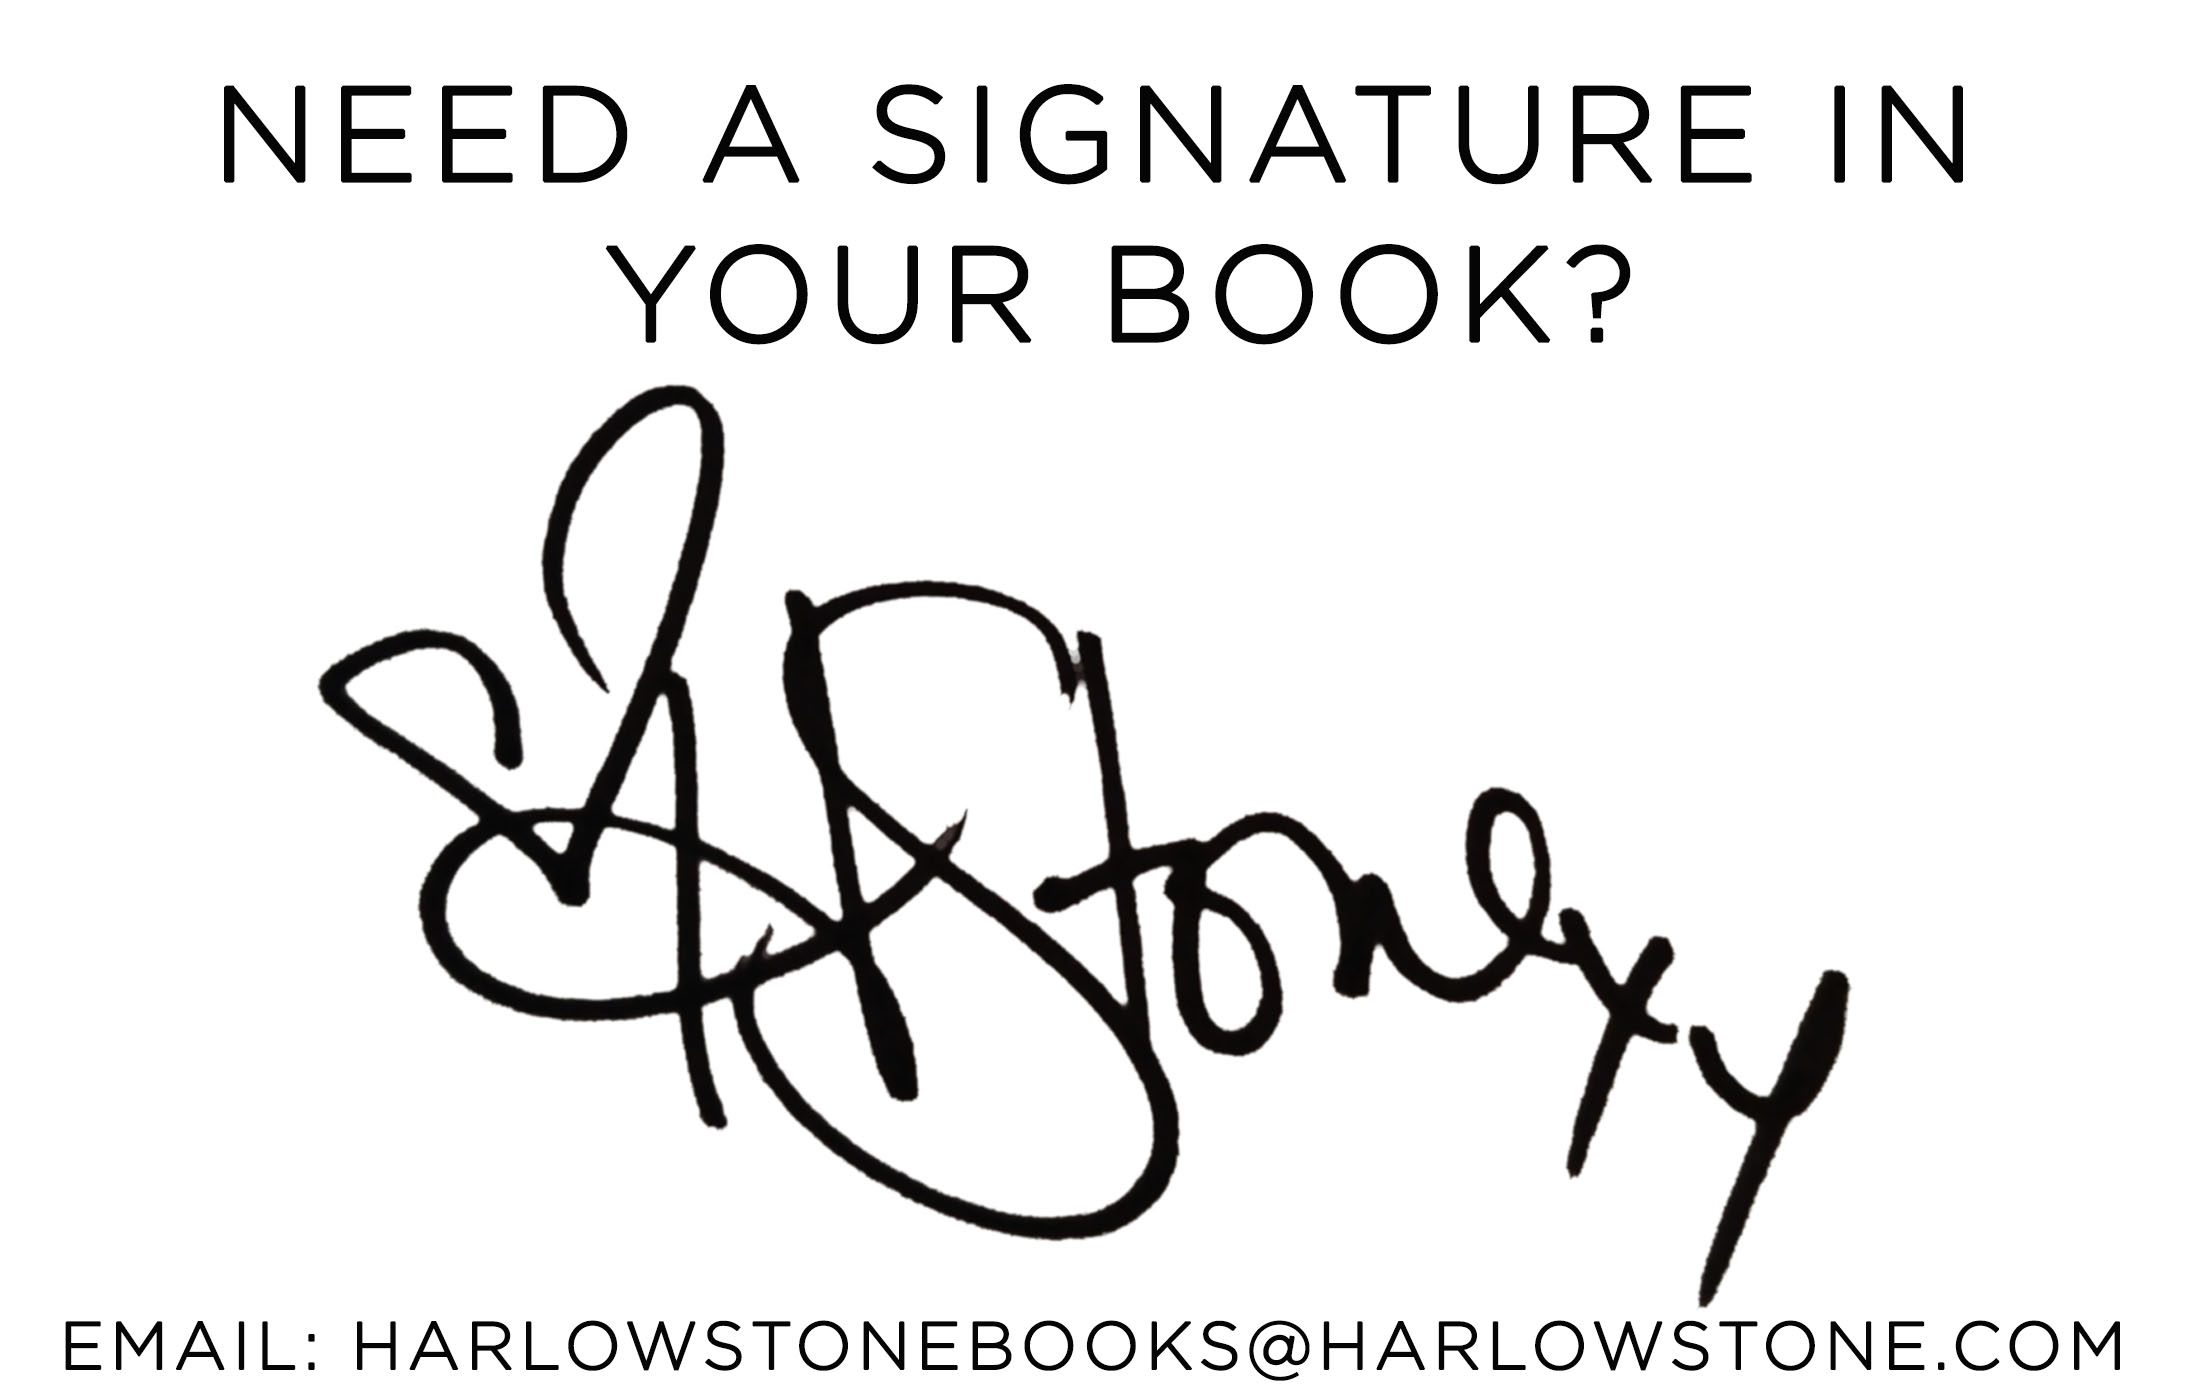 No Problem. - Email Harlow and she'll send you a personalized bookplate sticker for inside the flap!Please include the name you want in the book and where you purchased.harlowstonebooks@harlowstone.com